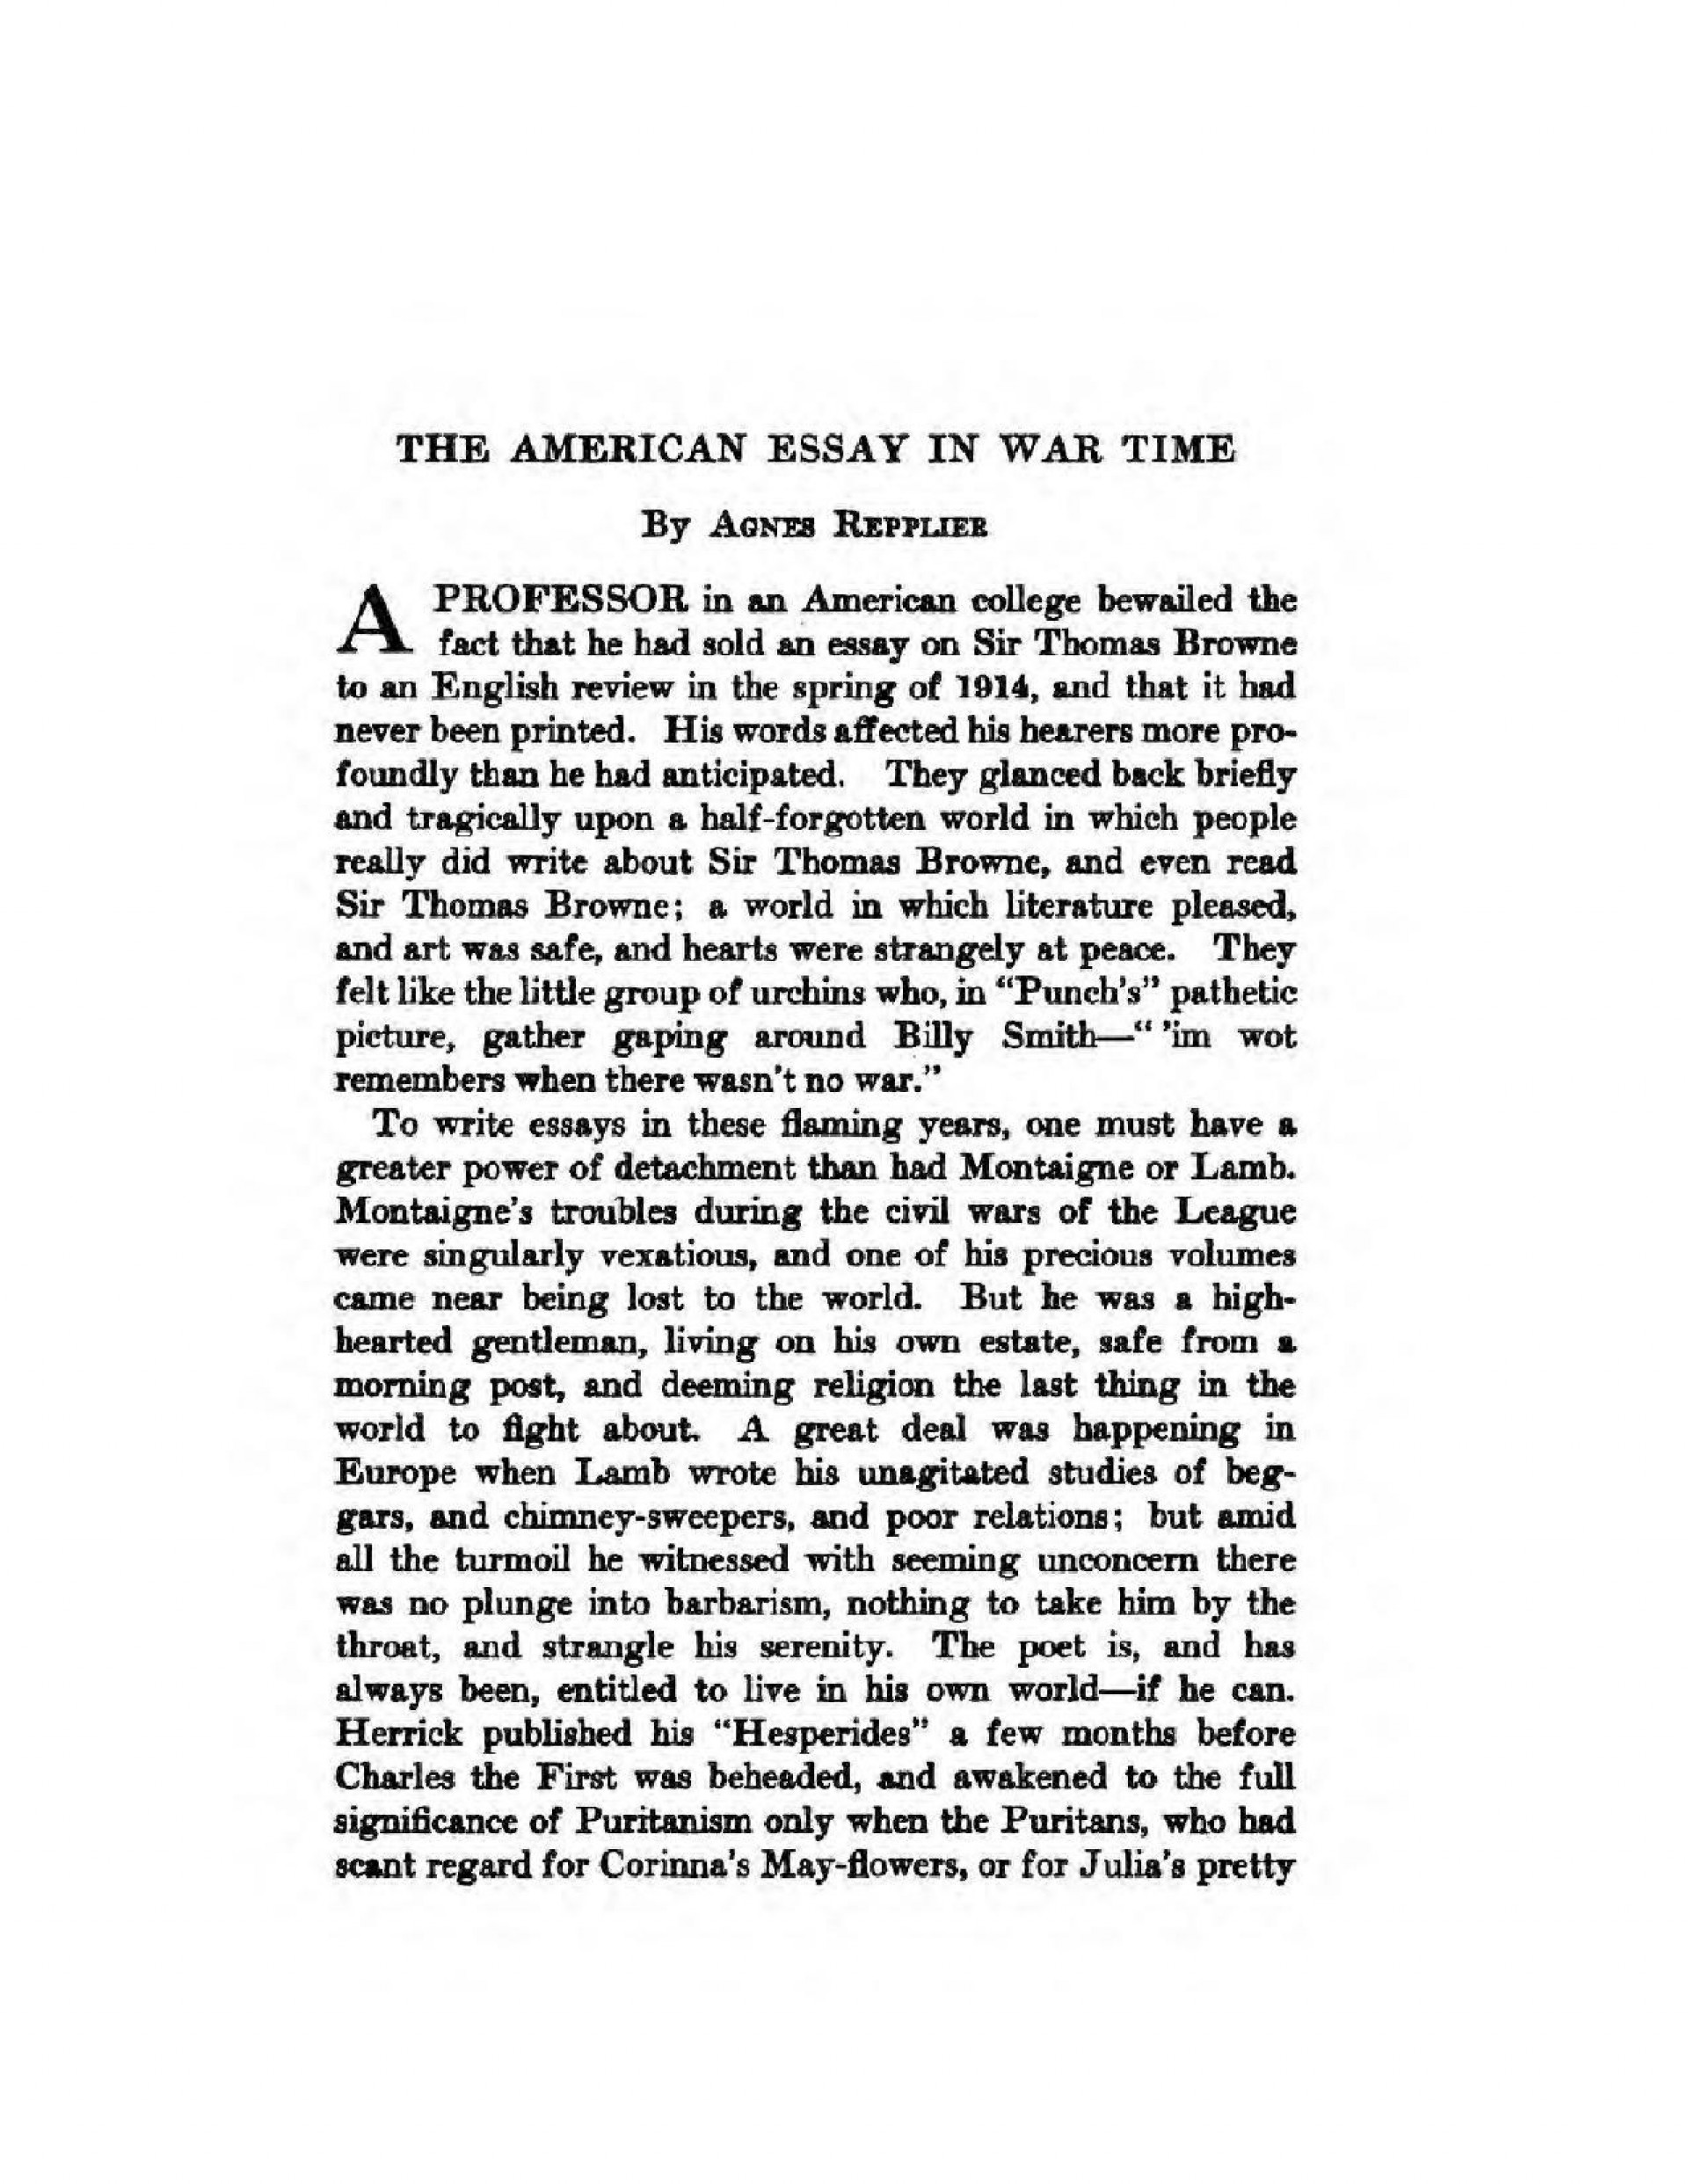 023 American Essay Example Page1 1275px The In War Time2c Agnes Repplier2c 1918 Striking Format Literature Topics Identity Titles 1920